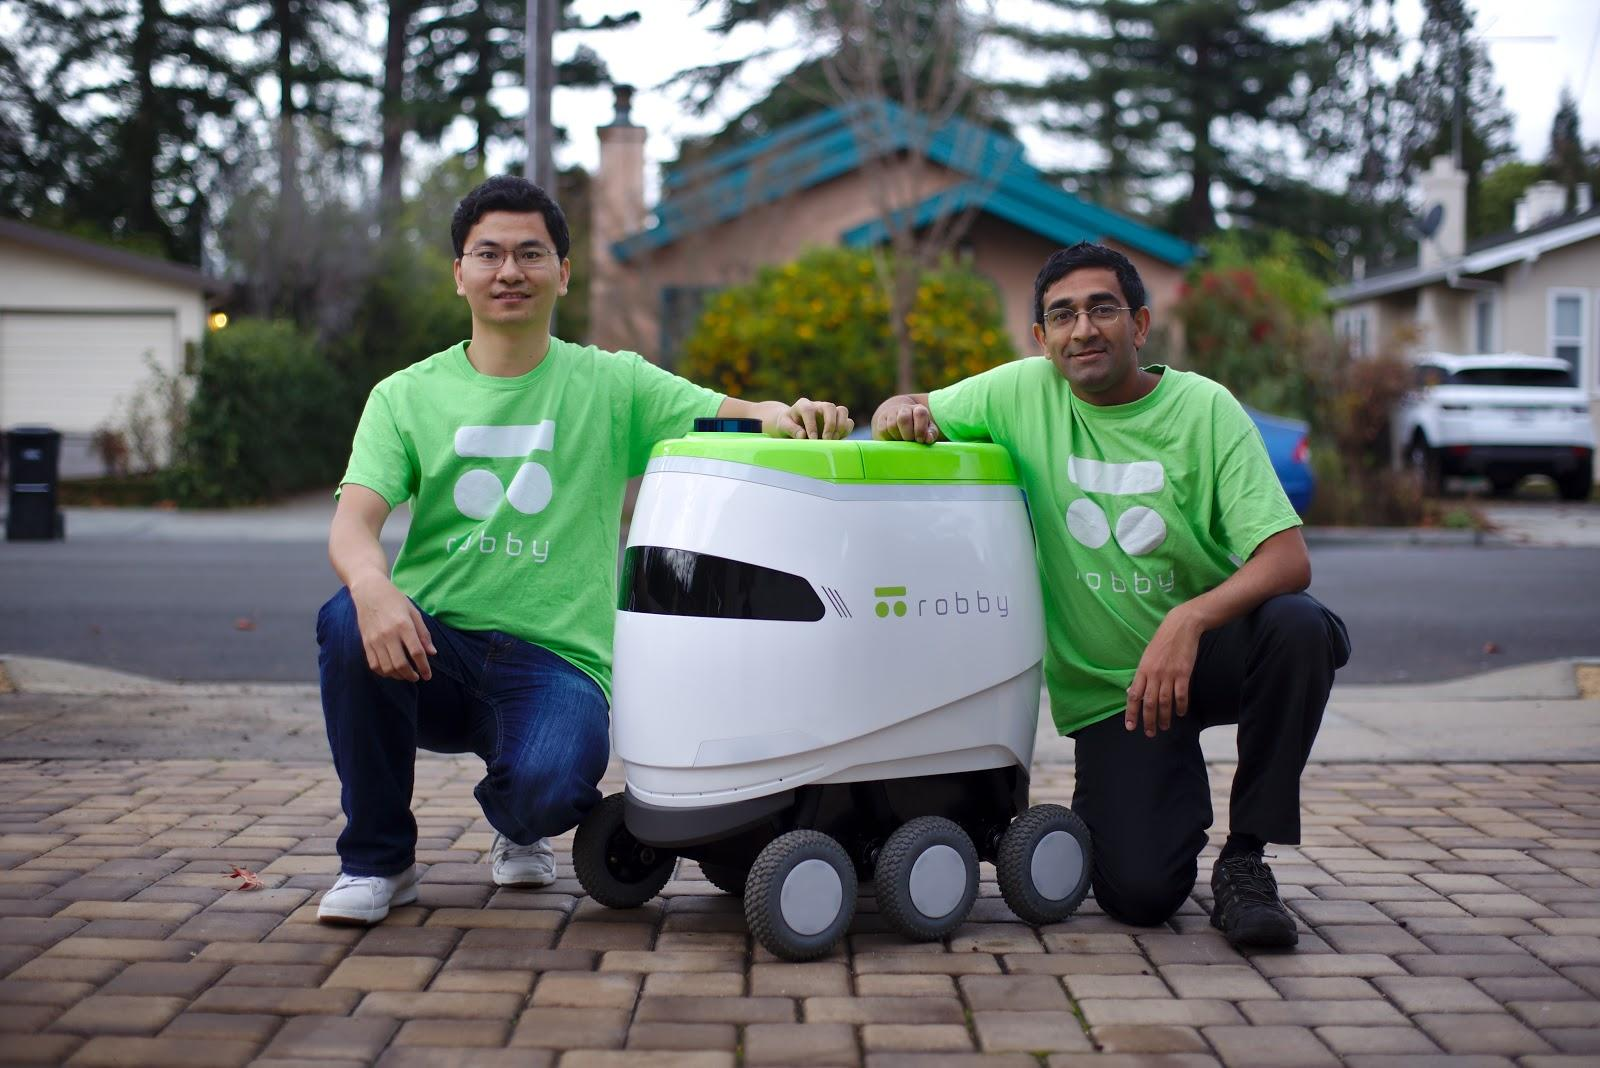 Robby the last-mile delivery robot gets an update | ZDNet